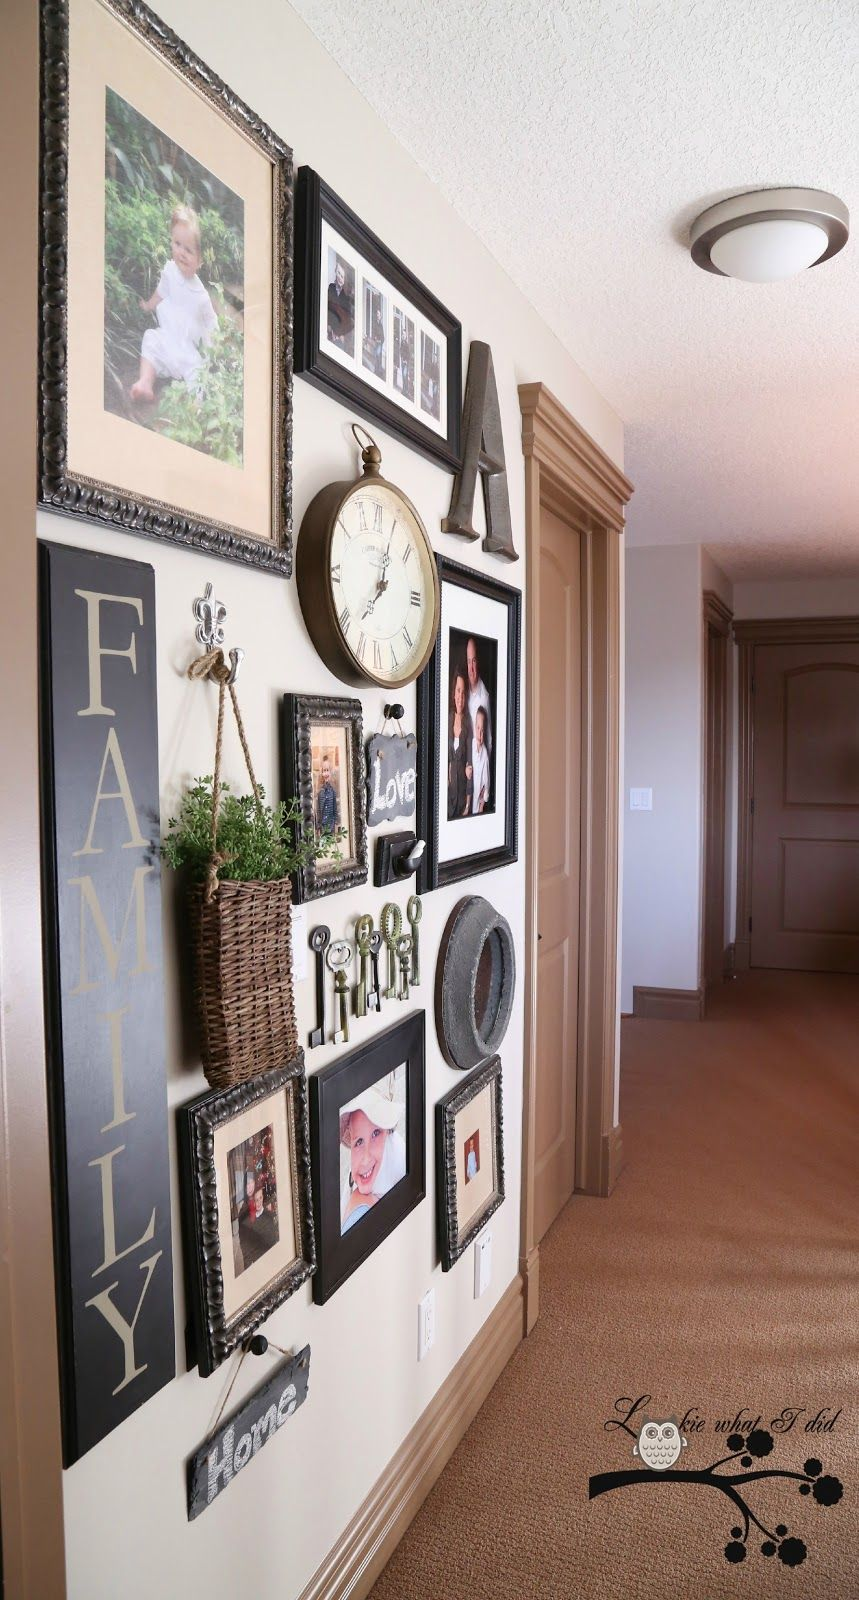 Hallway Wall Idea   Love The Use Of Different Elements And Color Pix Rather  Than Bu0026W Or Sepia Tones, And She Demos An Easy Way To Create Your Wall  Layout. Part 79